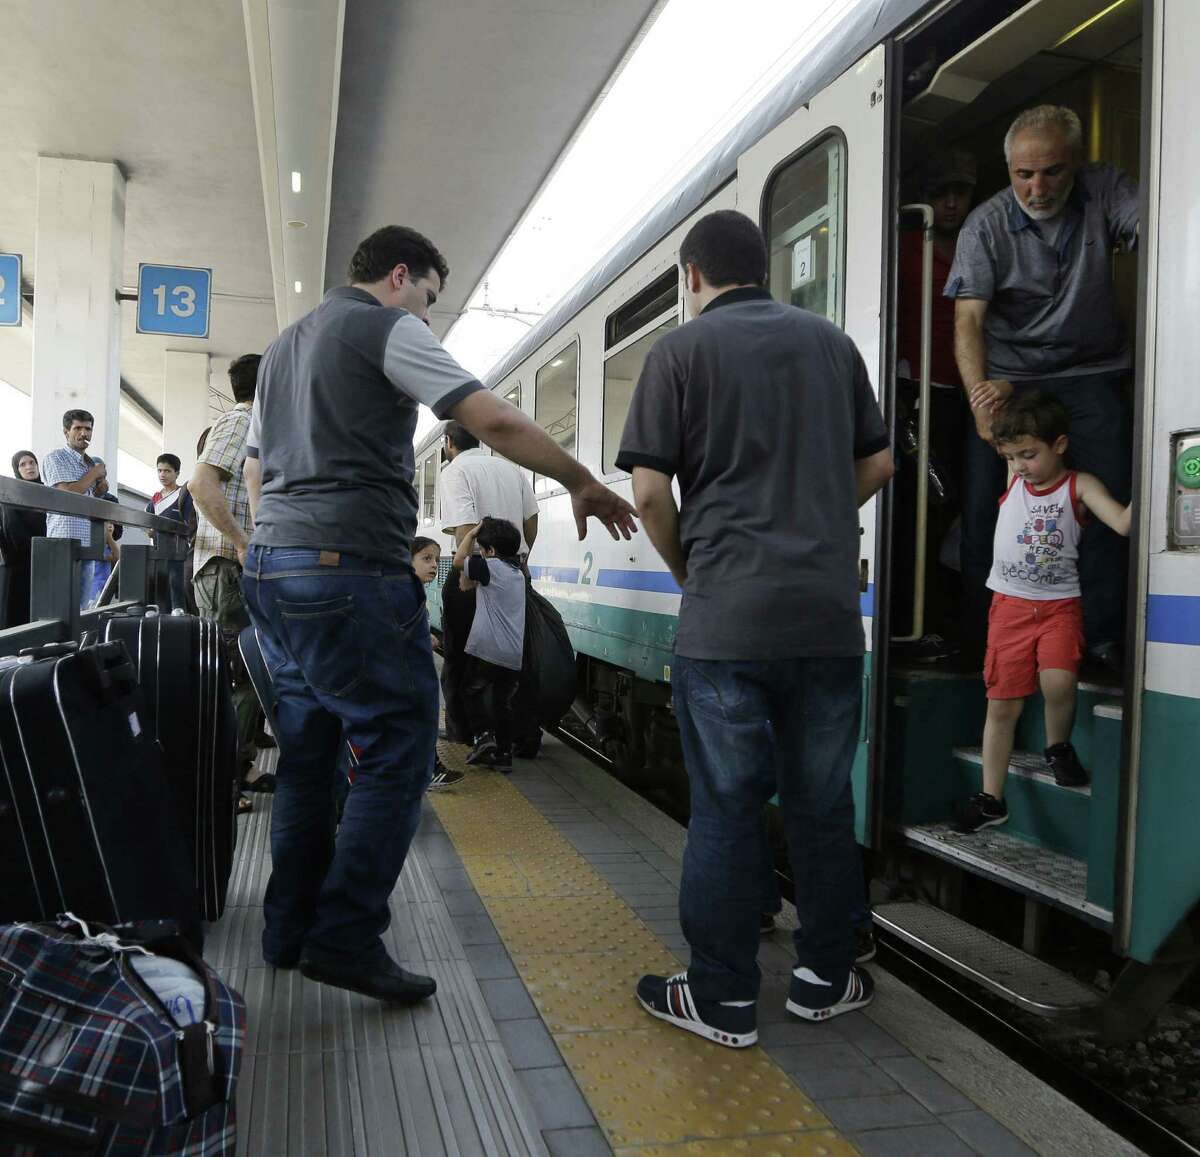 Syrian refugees arrive in Milan.